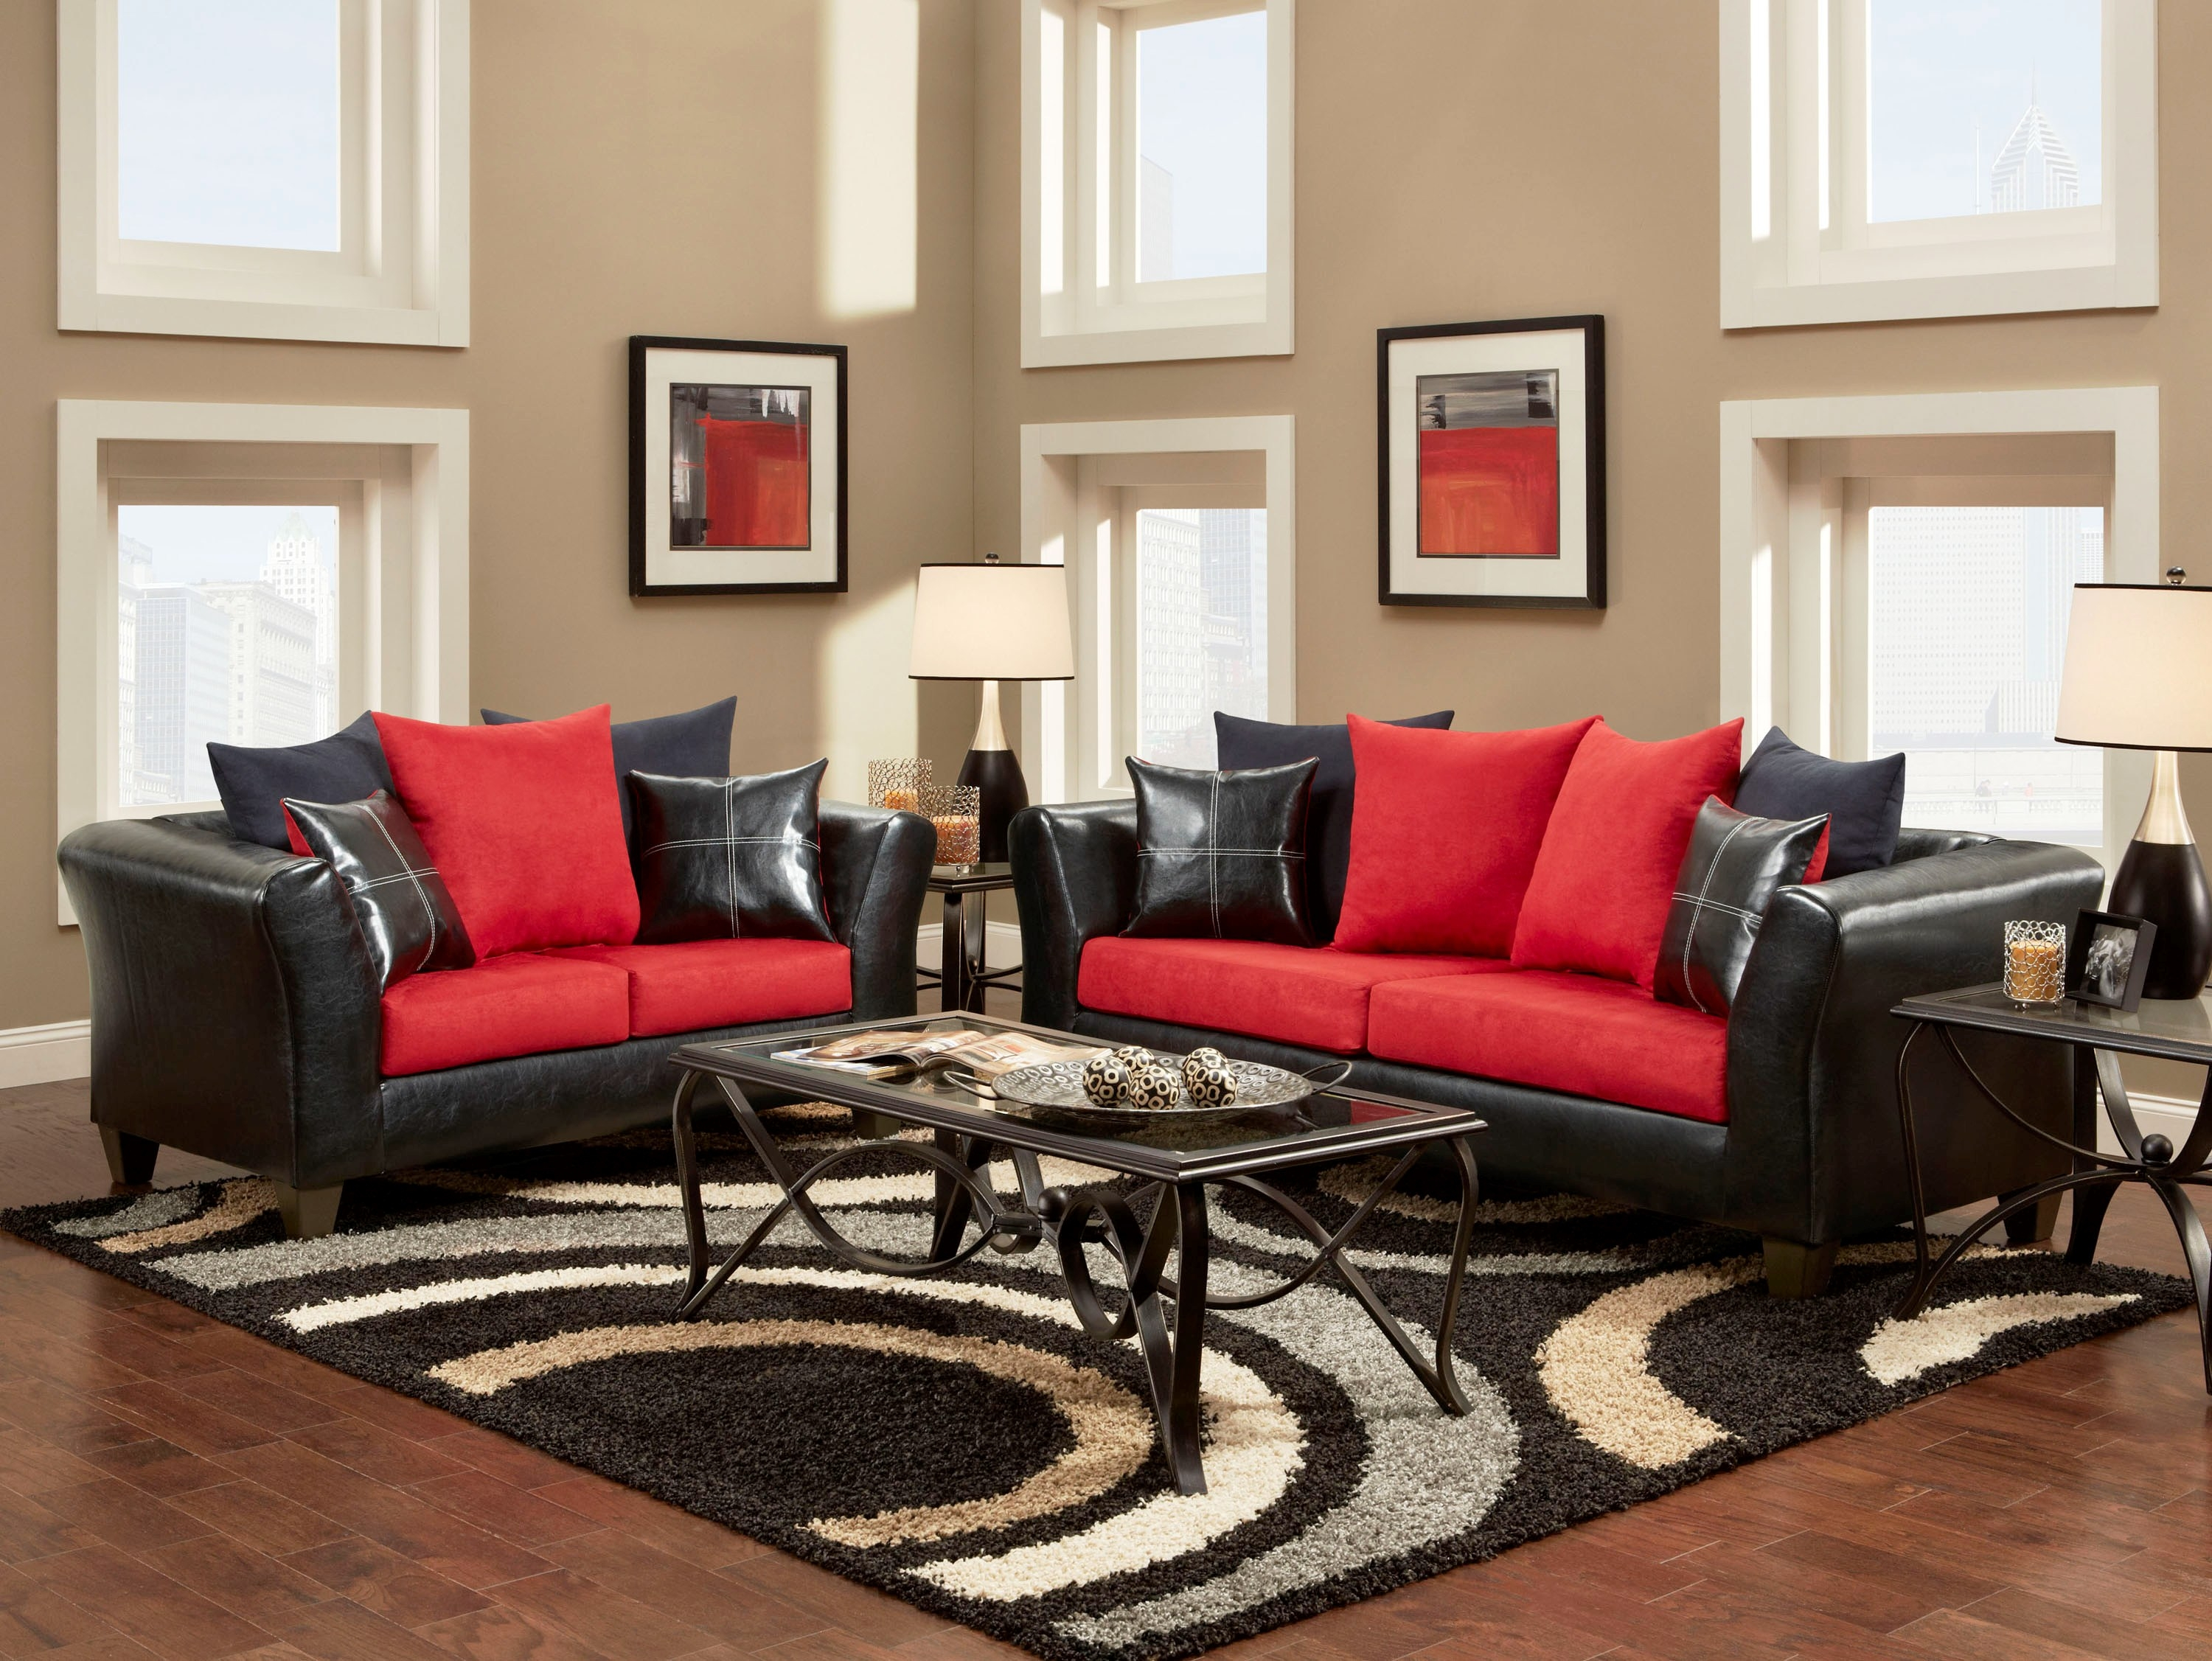 Red Black And White Living Room Set Living Room Ideas with 14 Smart Designs of How to Build Red And Black Living Room Set